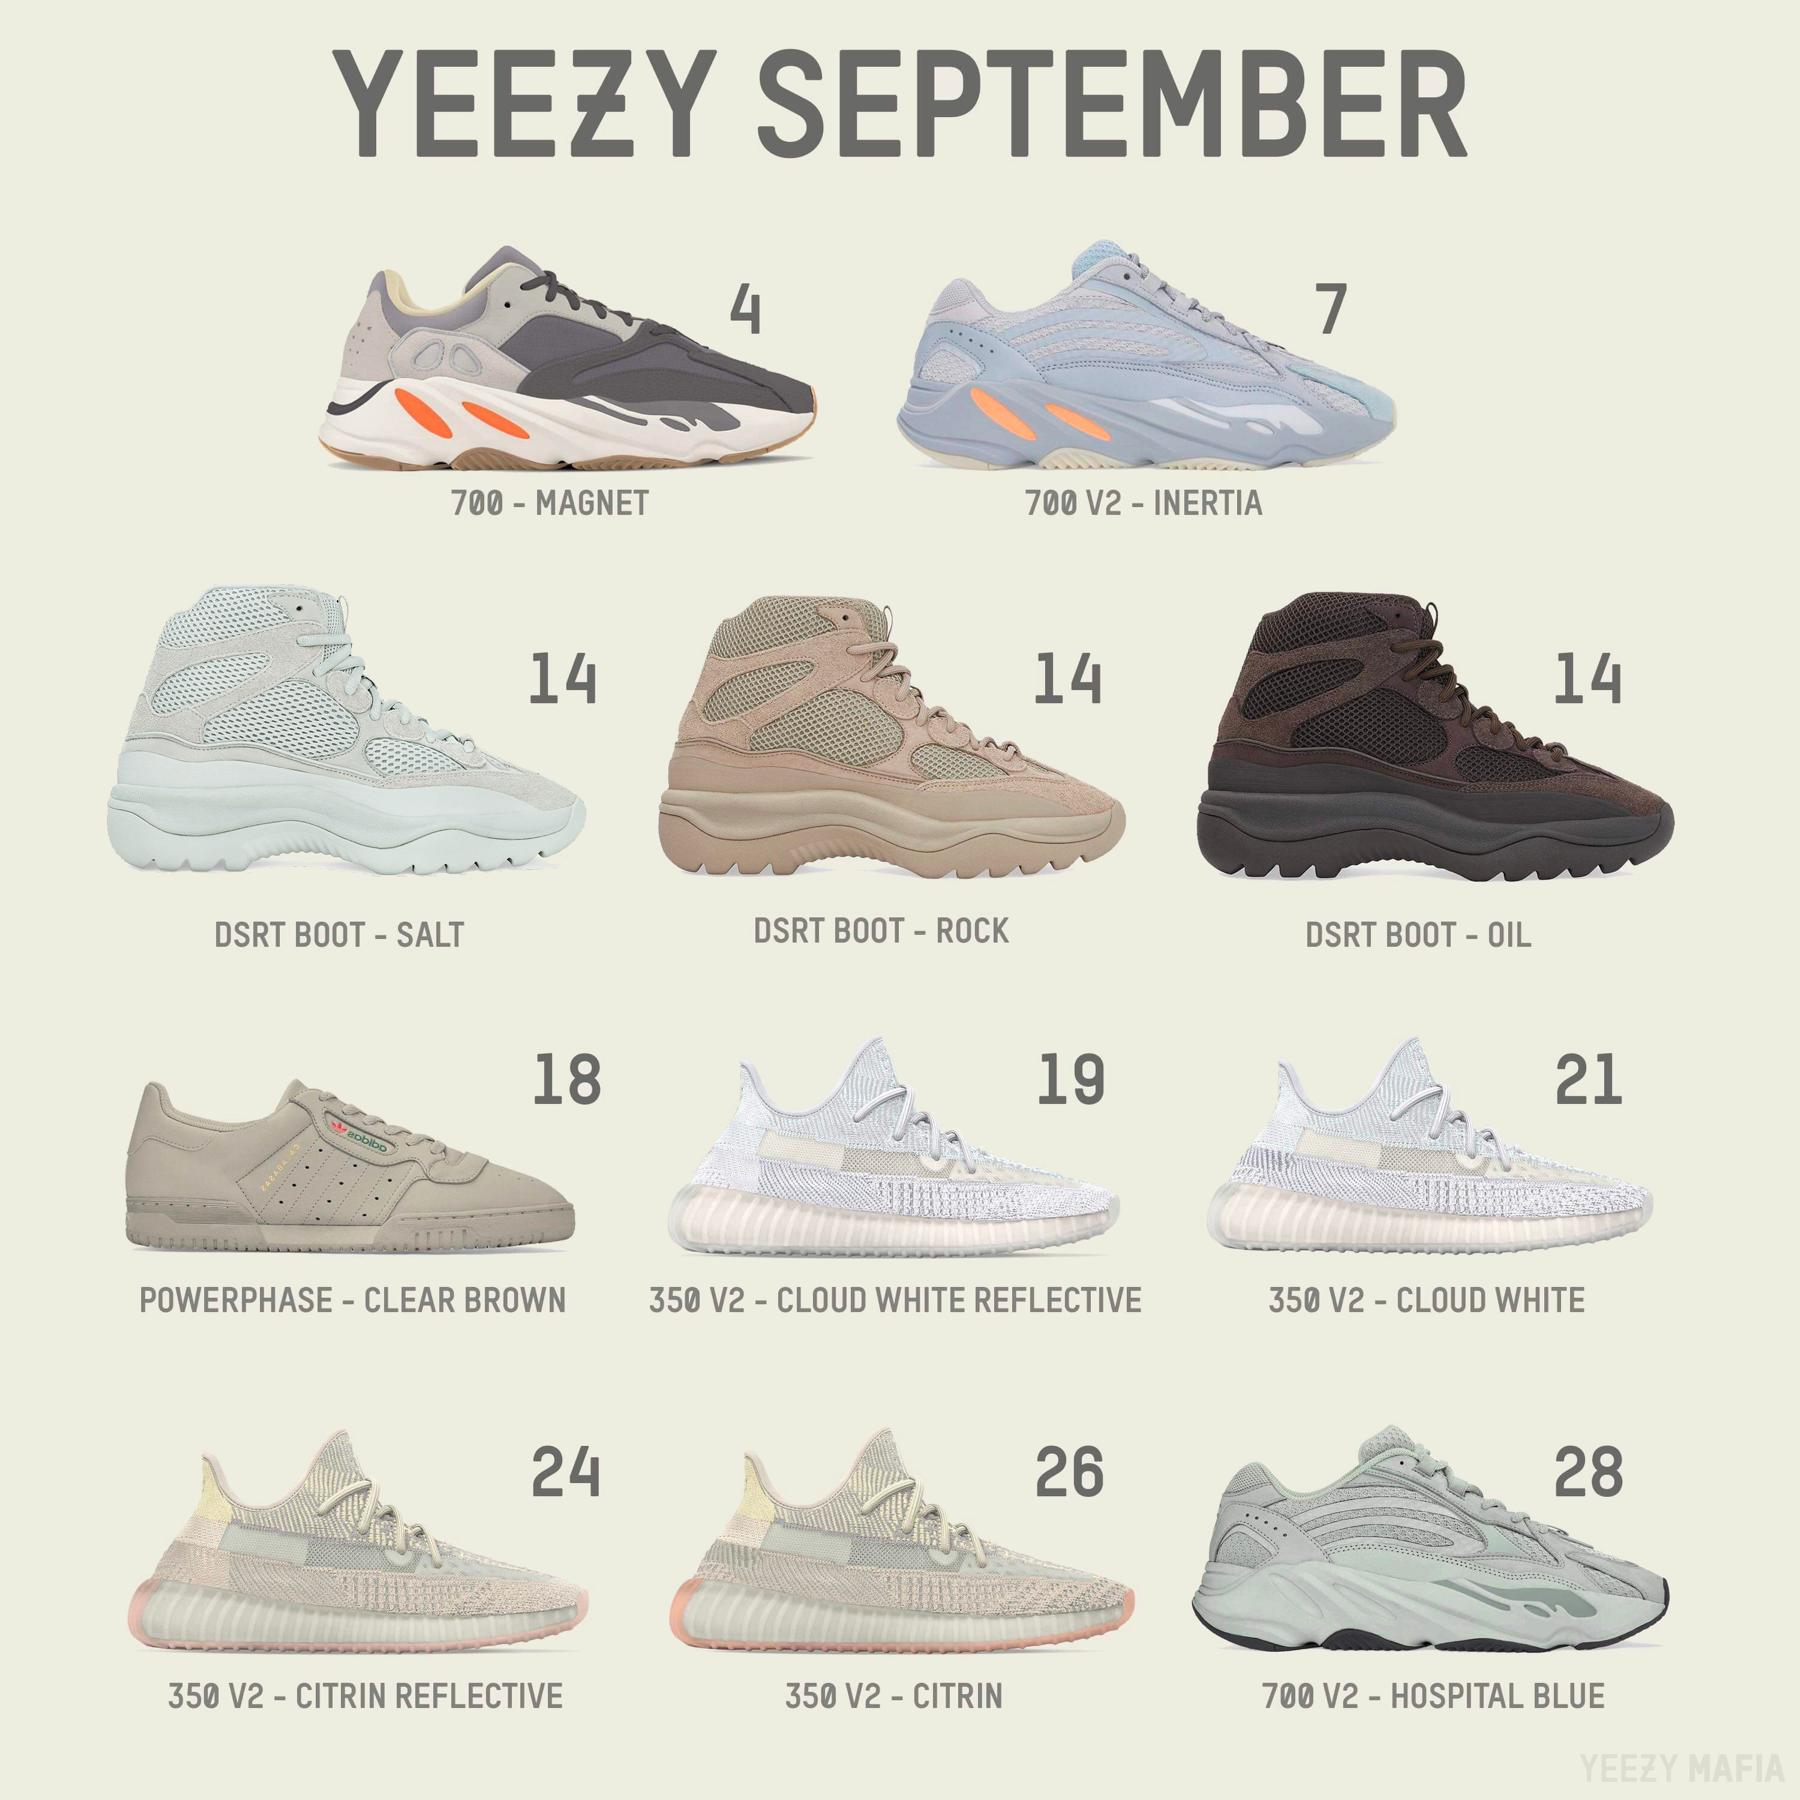 pretty nice 17905 7ec1e Your Best Look at The Adidas Yeezy Sneakers Lineup ...